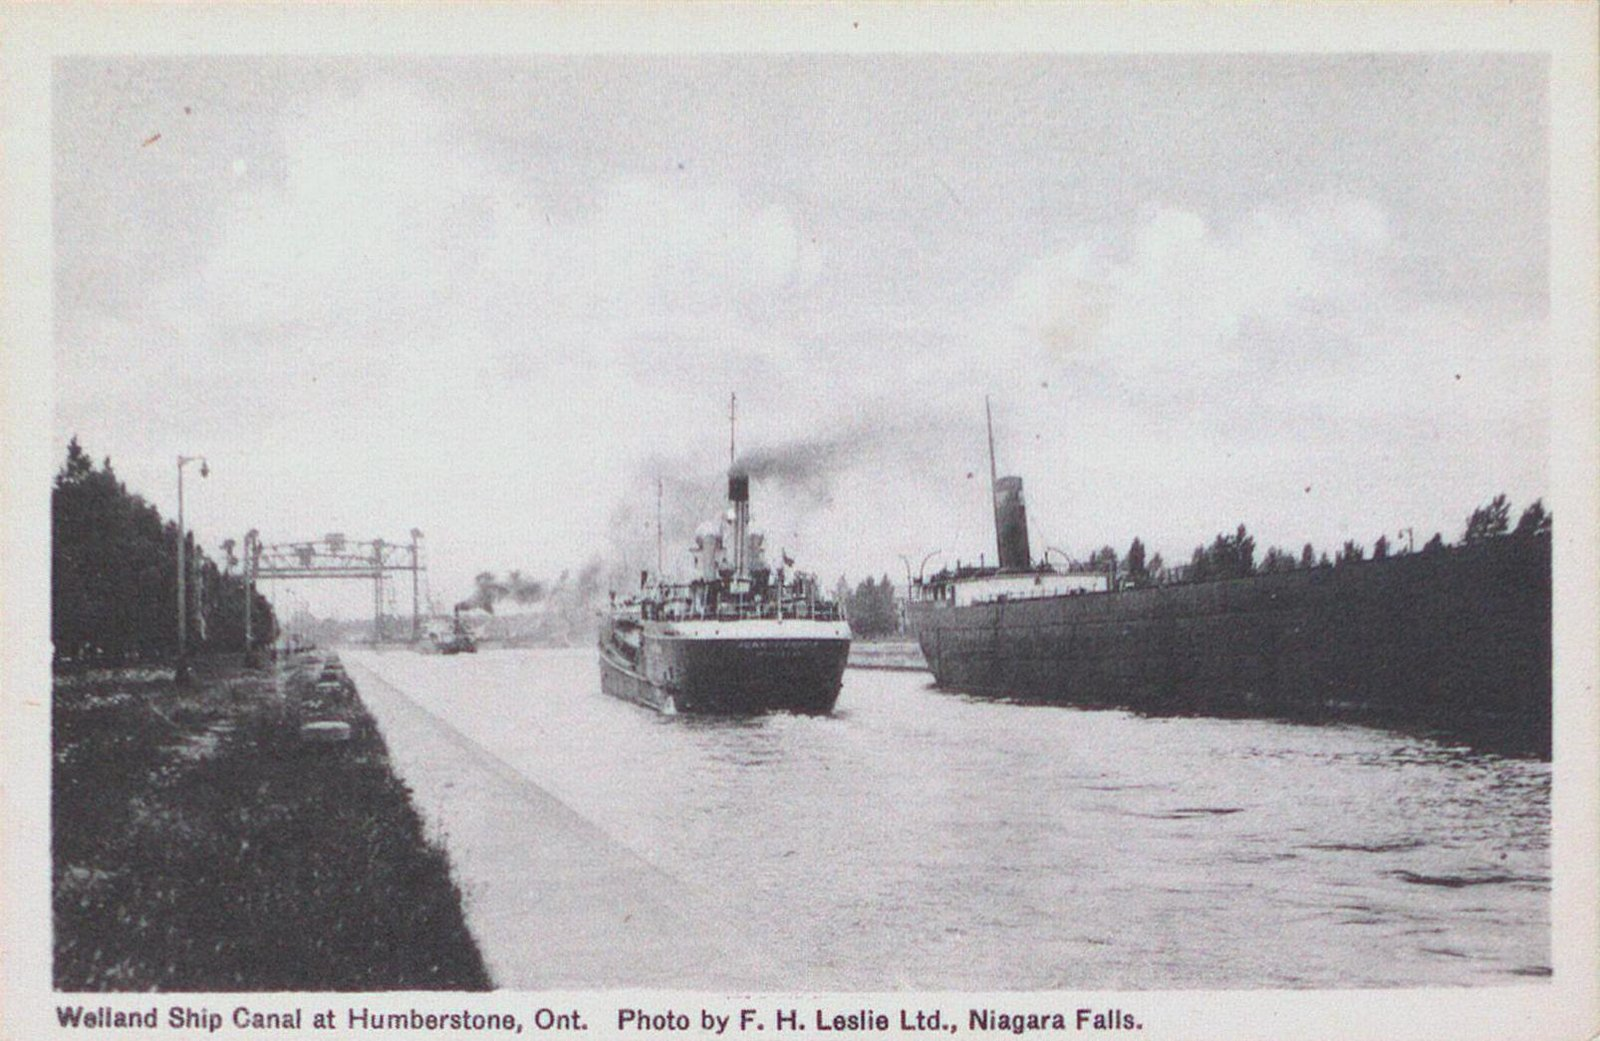 The Welland Ship Canal at Humberstone